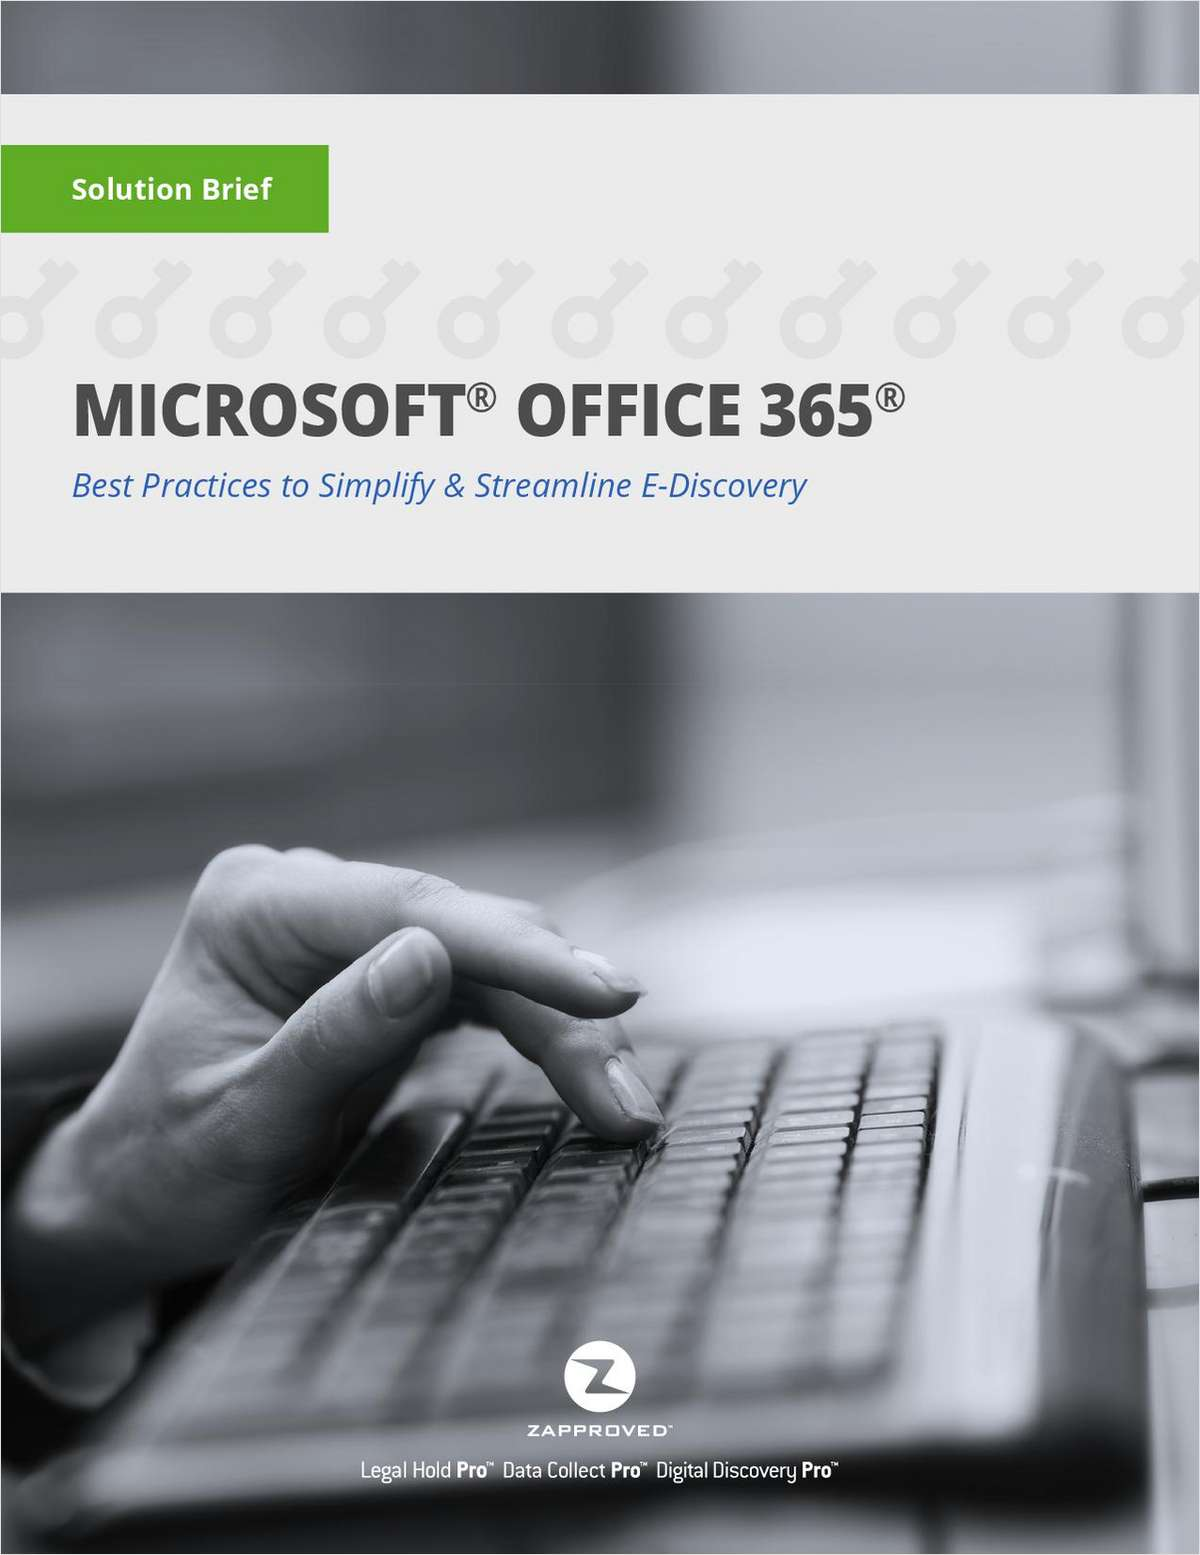 2017 Solution Brief: Microsoft Office 365